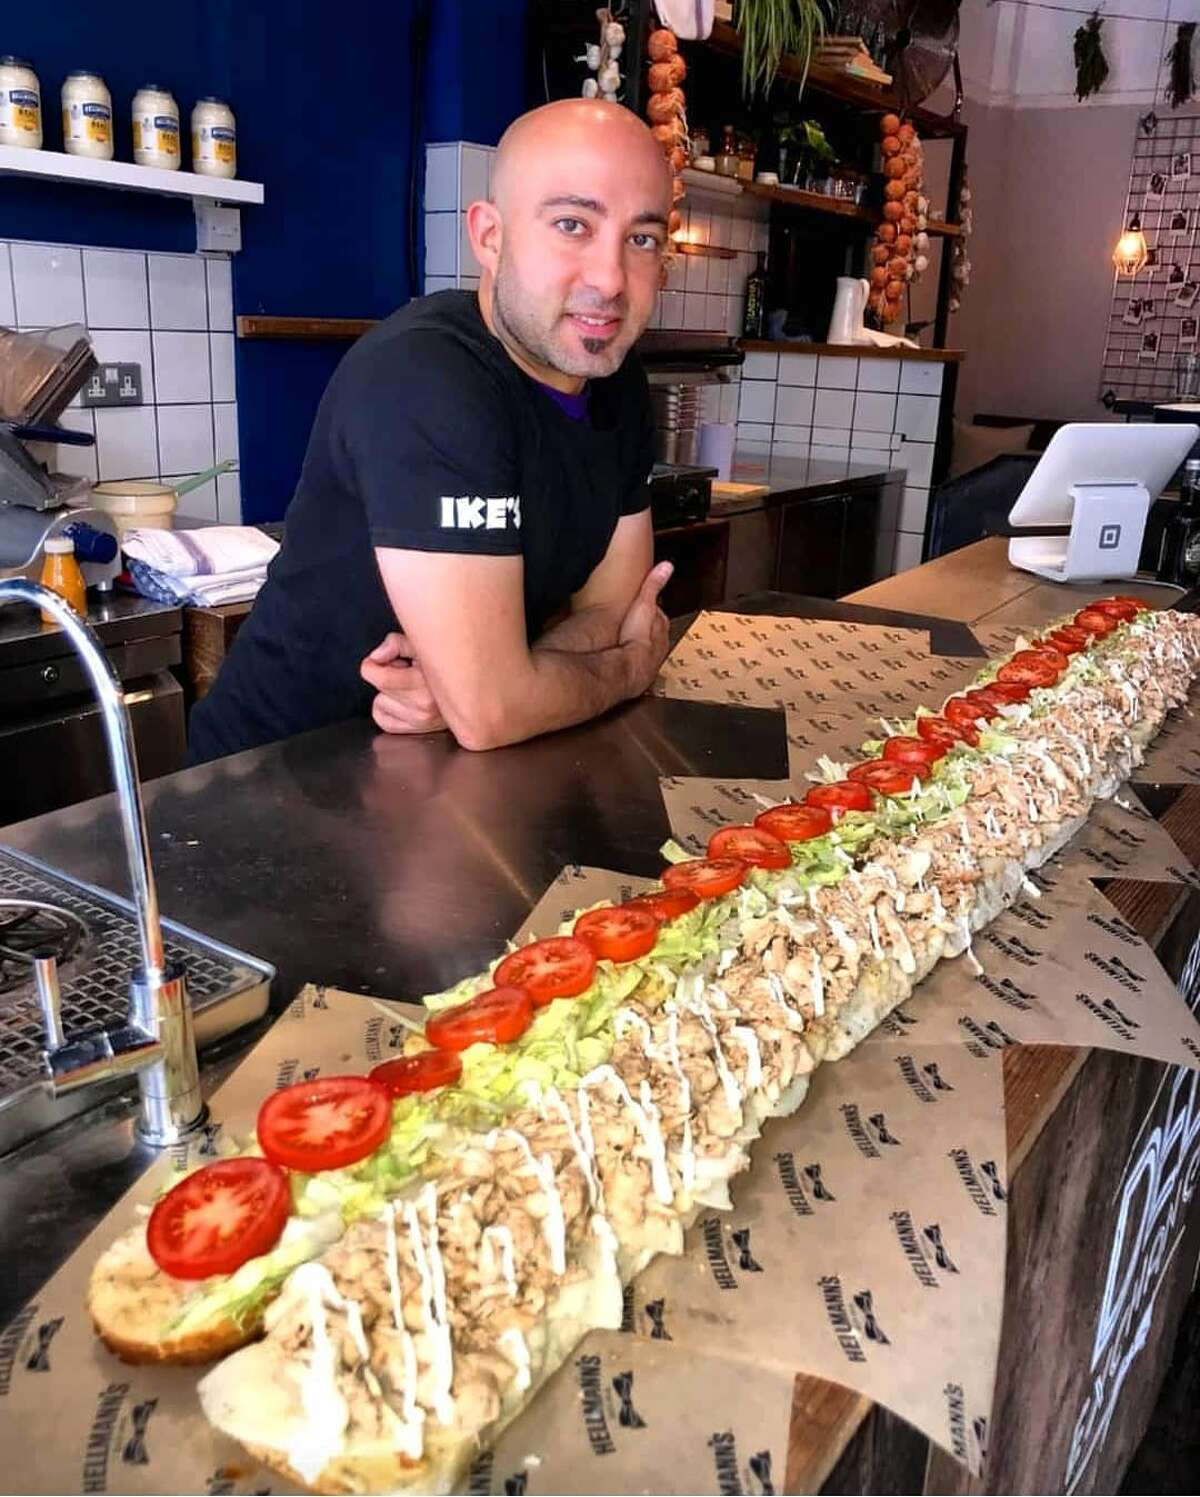 Ike Shehadeh, who created the first Ike's Place sandwich shop in San Francisco in 2007, has expanded and now has 50 stores in three states. But Shehadeh says he's done looking for another place in SF since the lease expired on his flagship store in 2016.